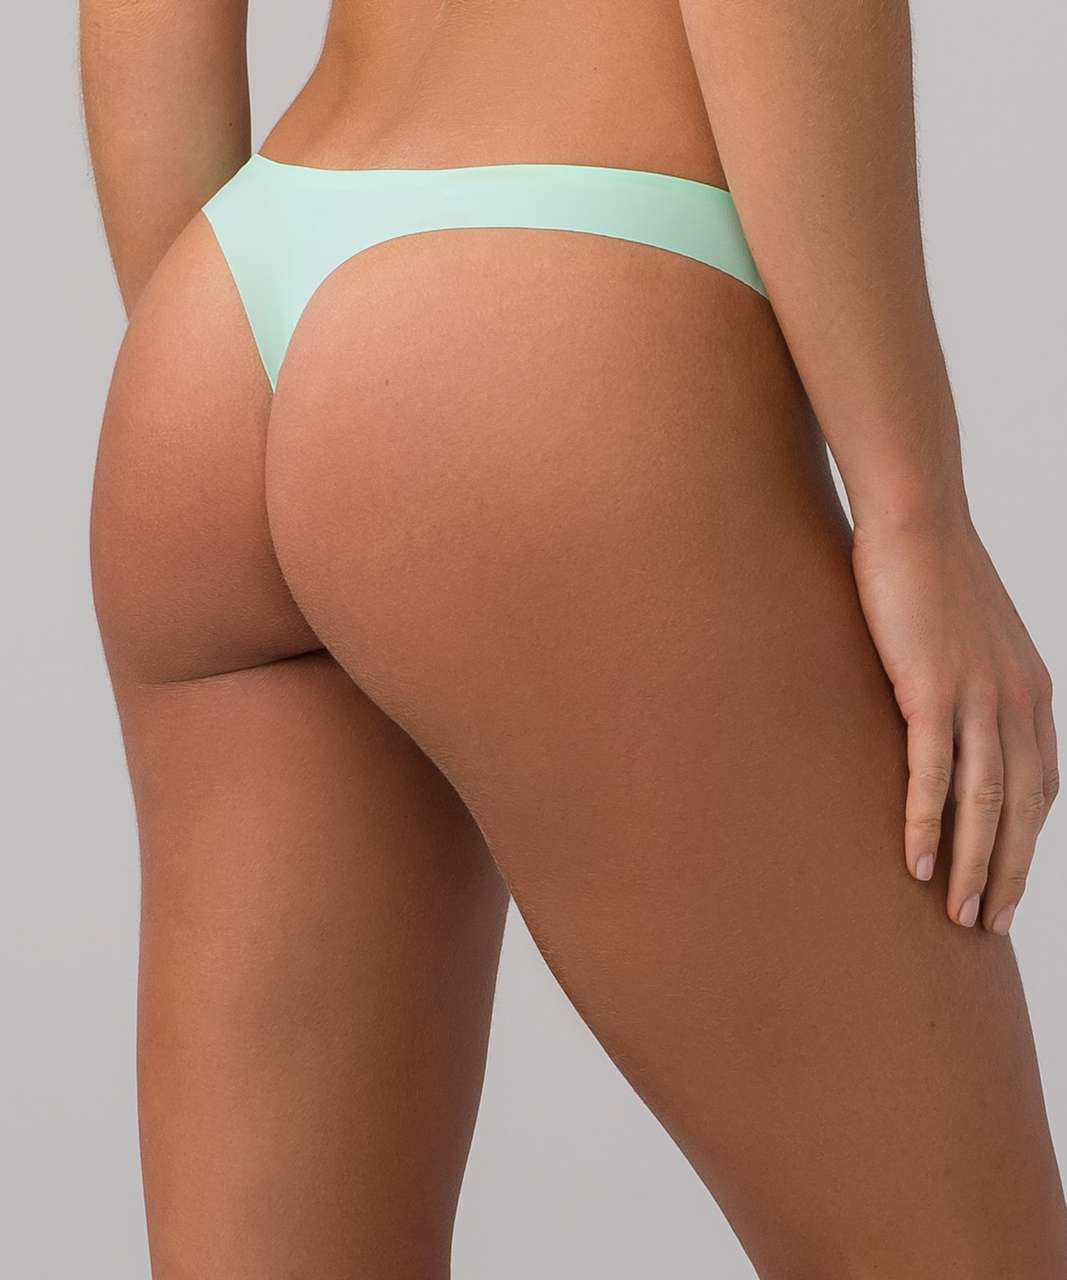 Lululemon Namastay Put Thong II - Fresh Teal